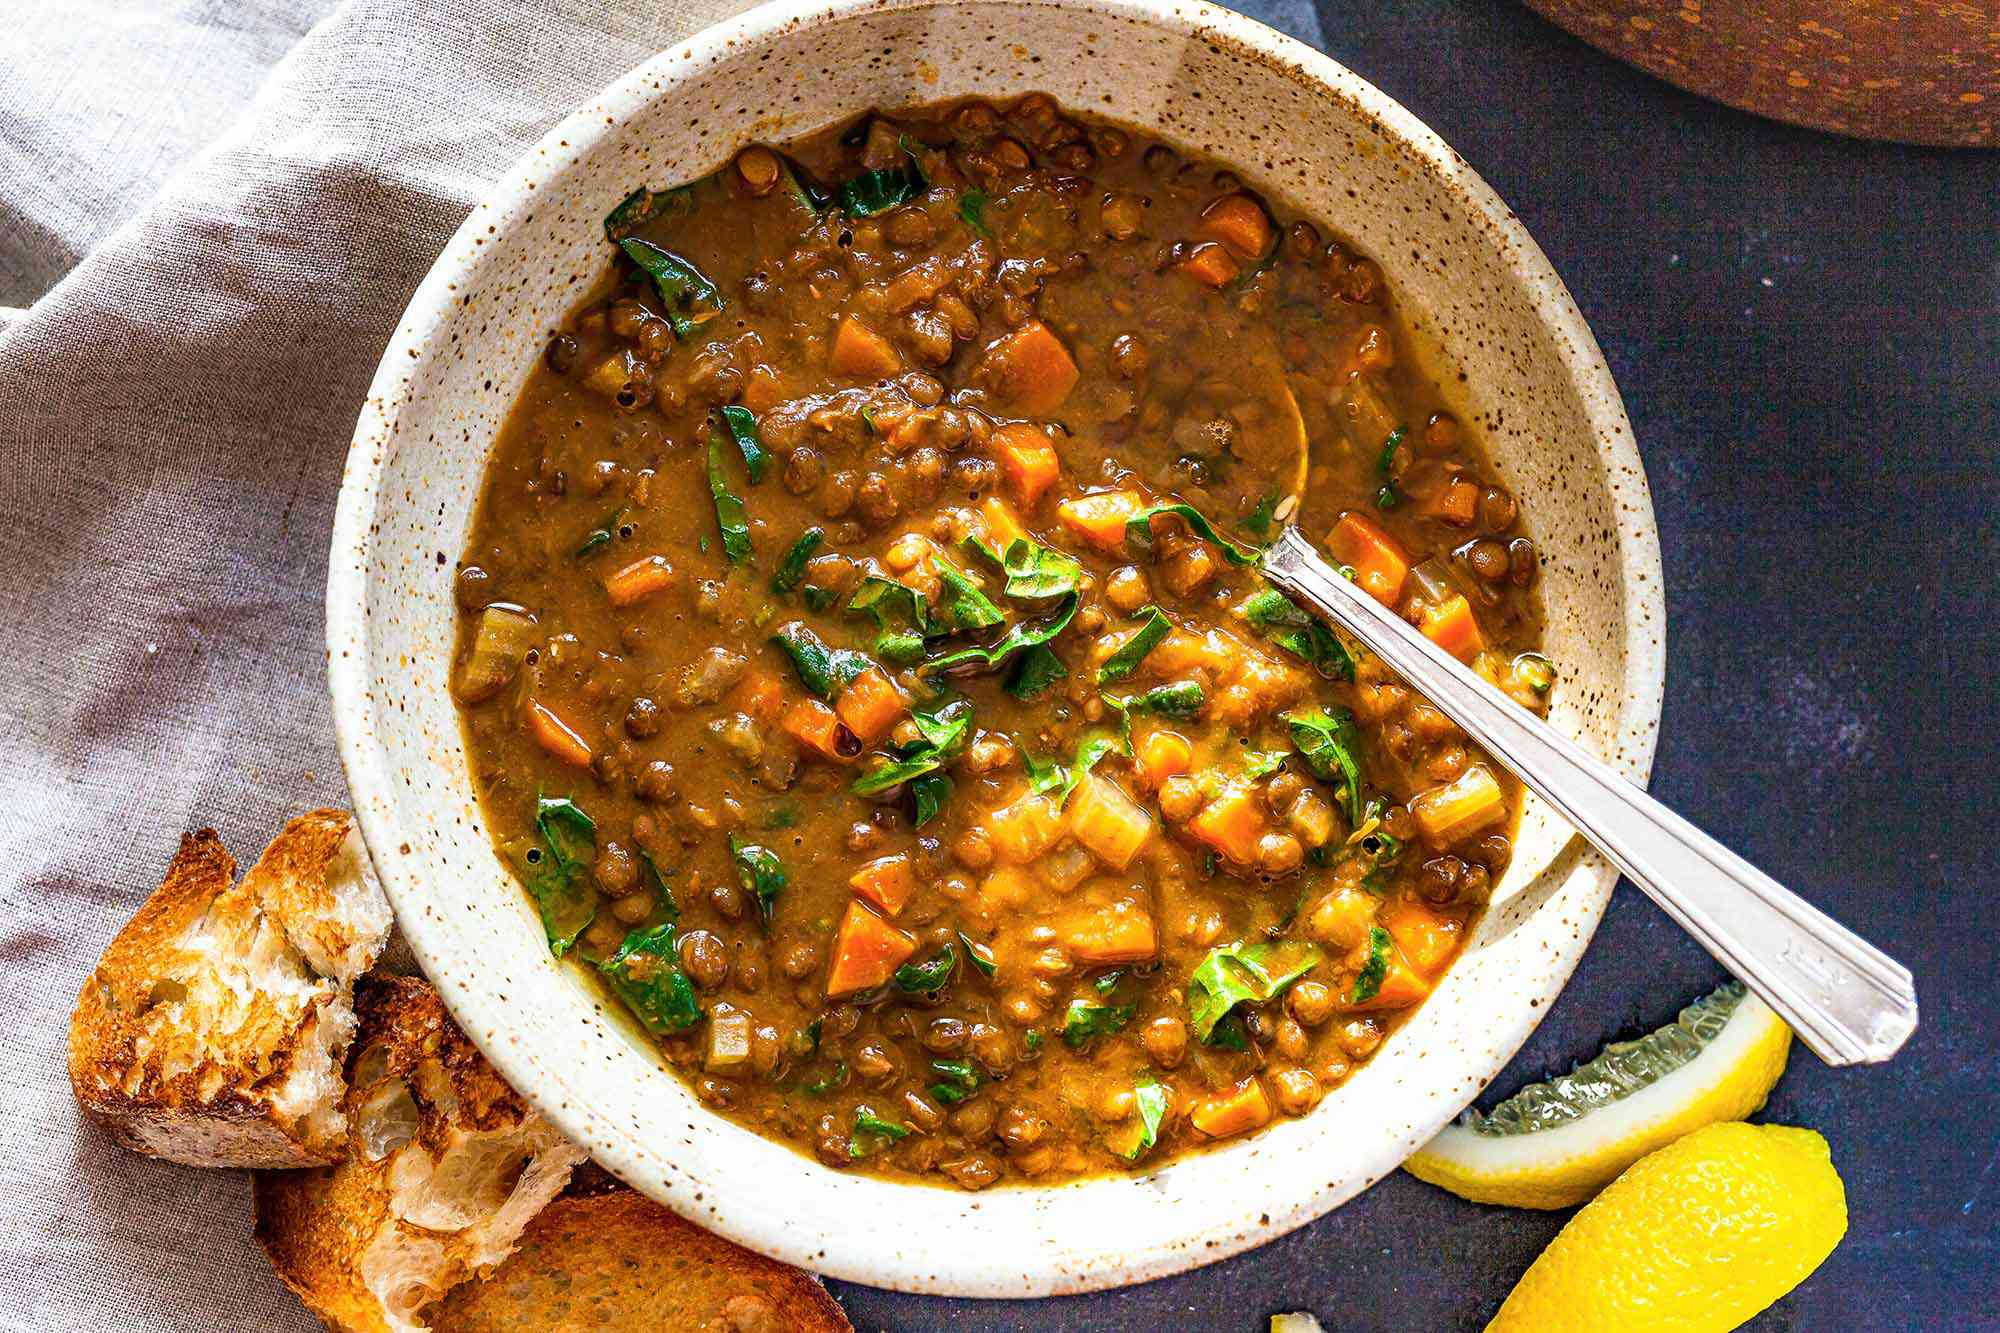 Easy Lentil Soup in a bowl with a spoon.